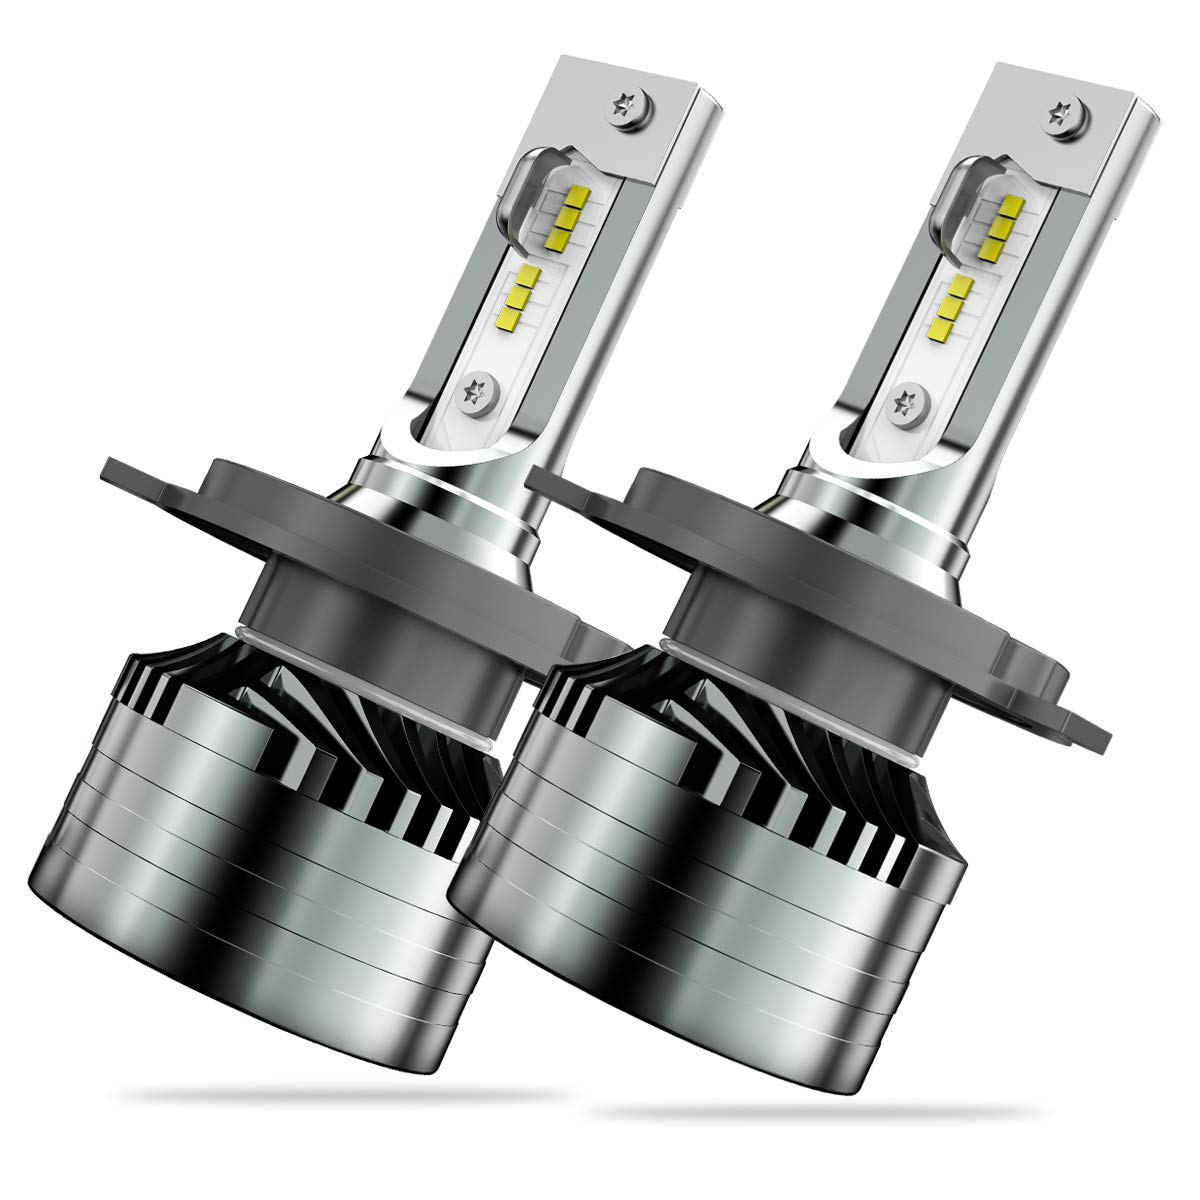 9003/H4 LED Headlight Bulbs, Marsauto M2 Series HB2 Led Hi/Lo Beam Headlamp with Fan, CSP Chip CANbus-Ready IP67 12000LM 6000K Xenon White 2-Pack,